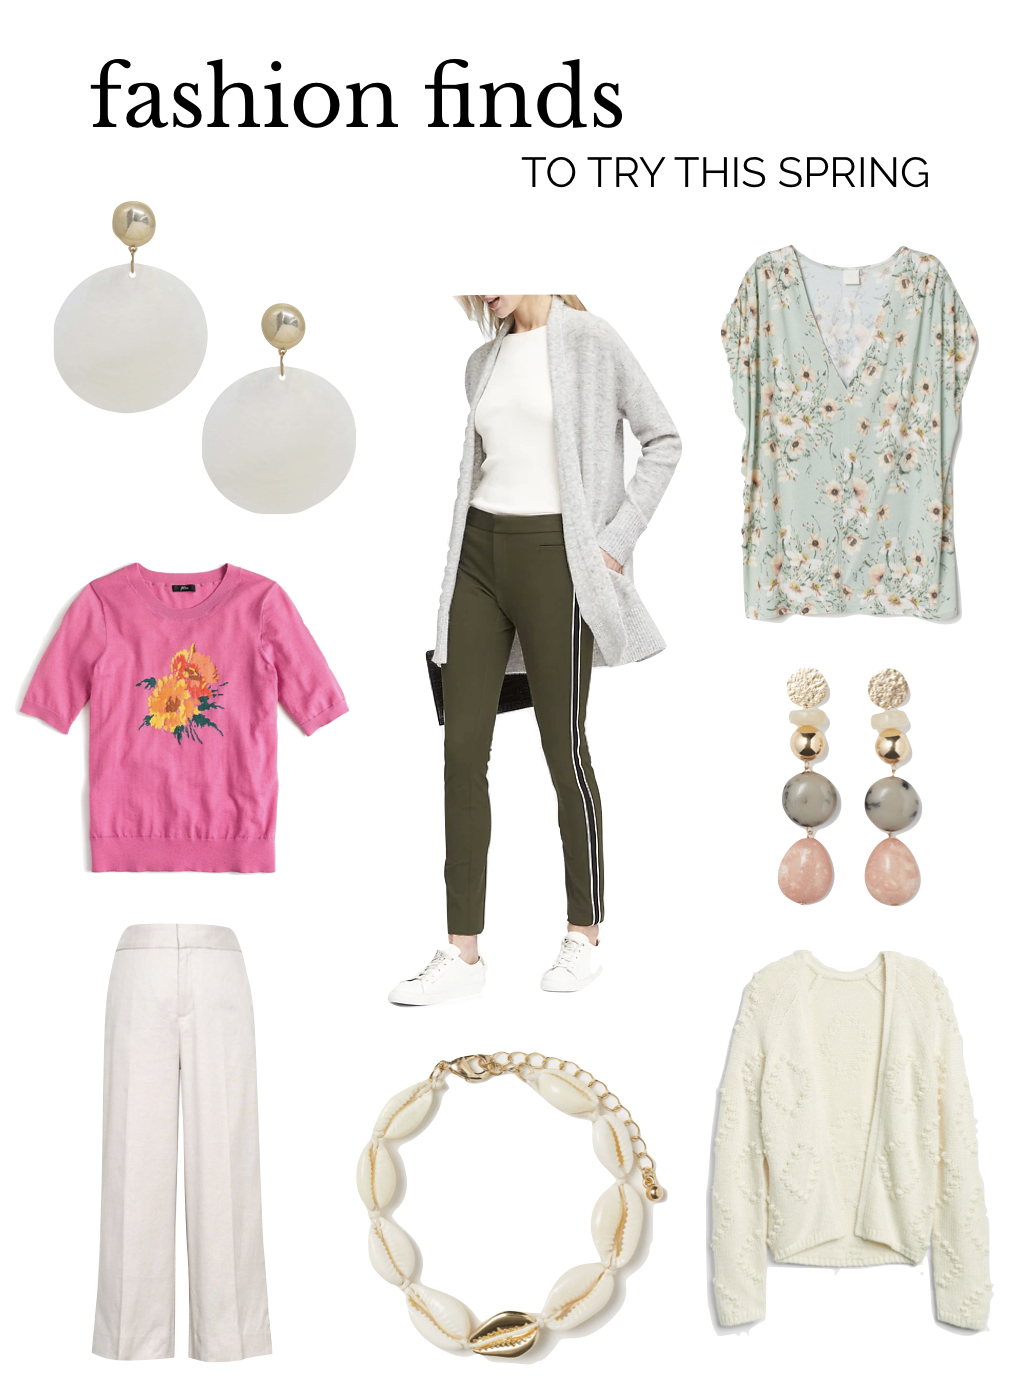 spring fashion 2019, new pant shapes, shell jewellry, floral fashion